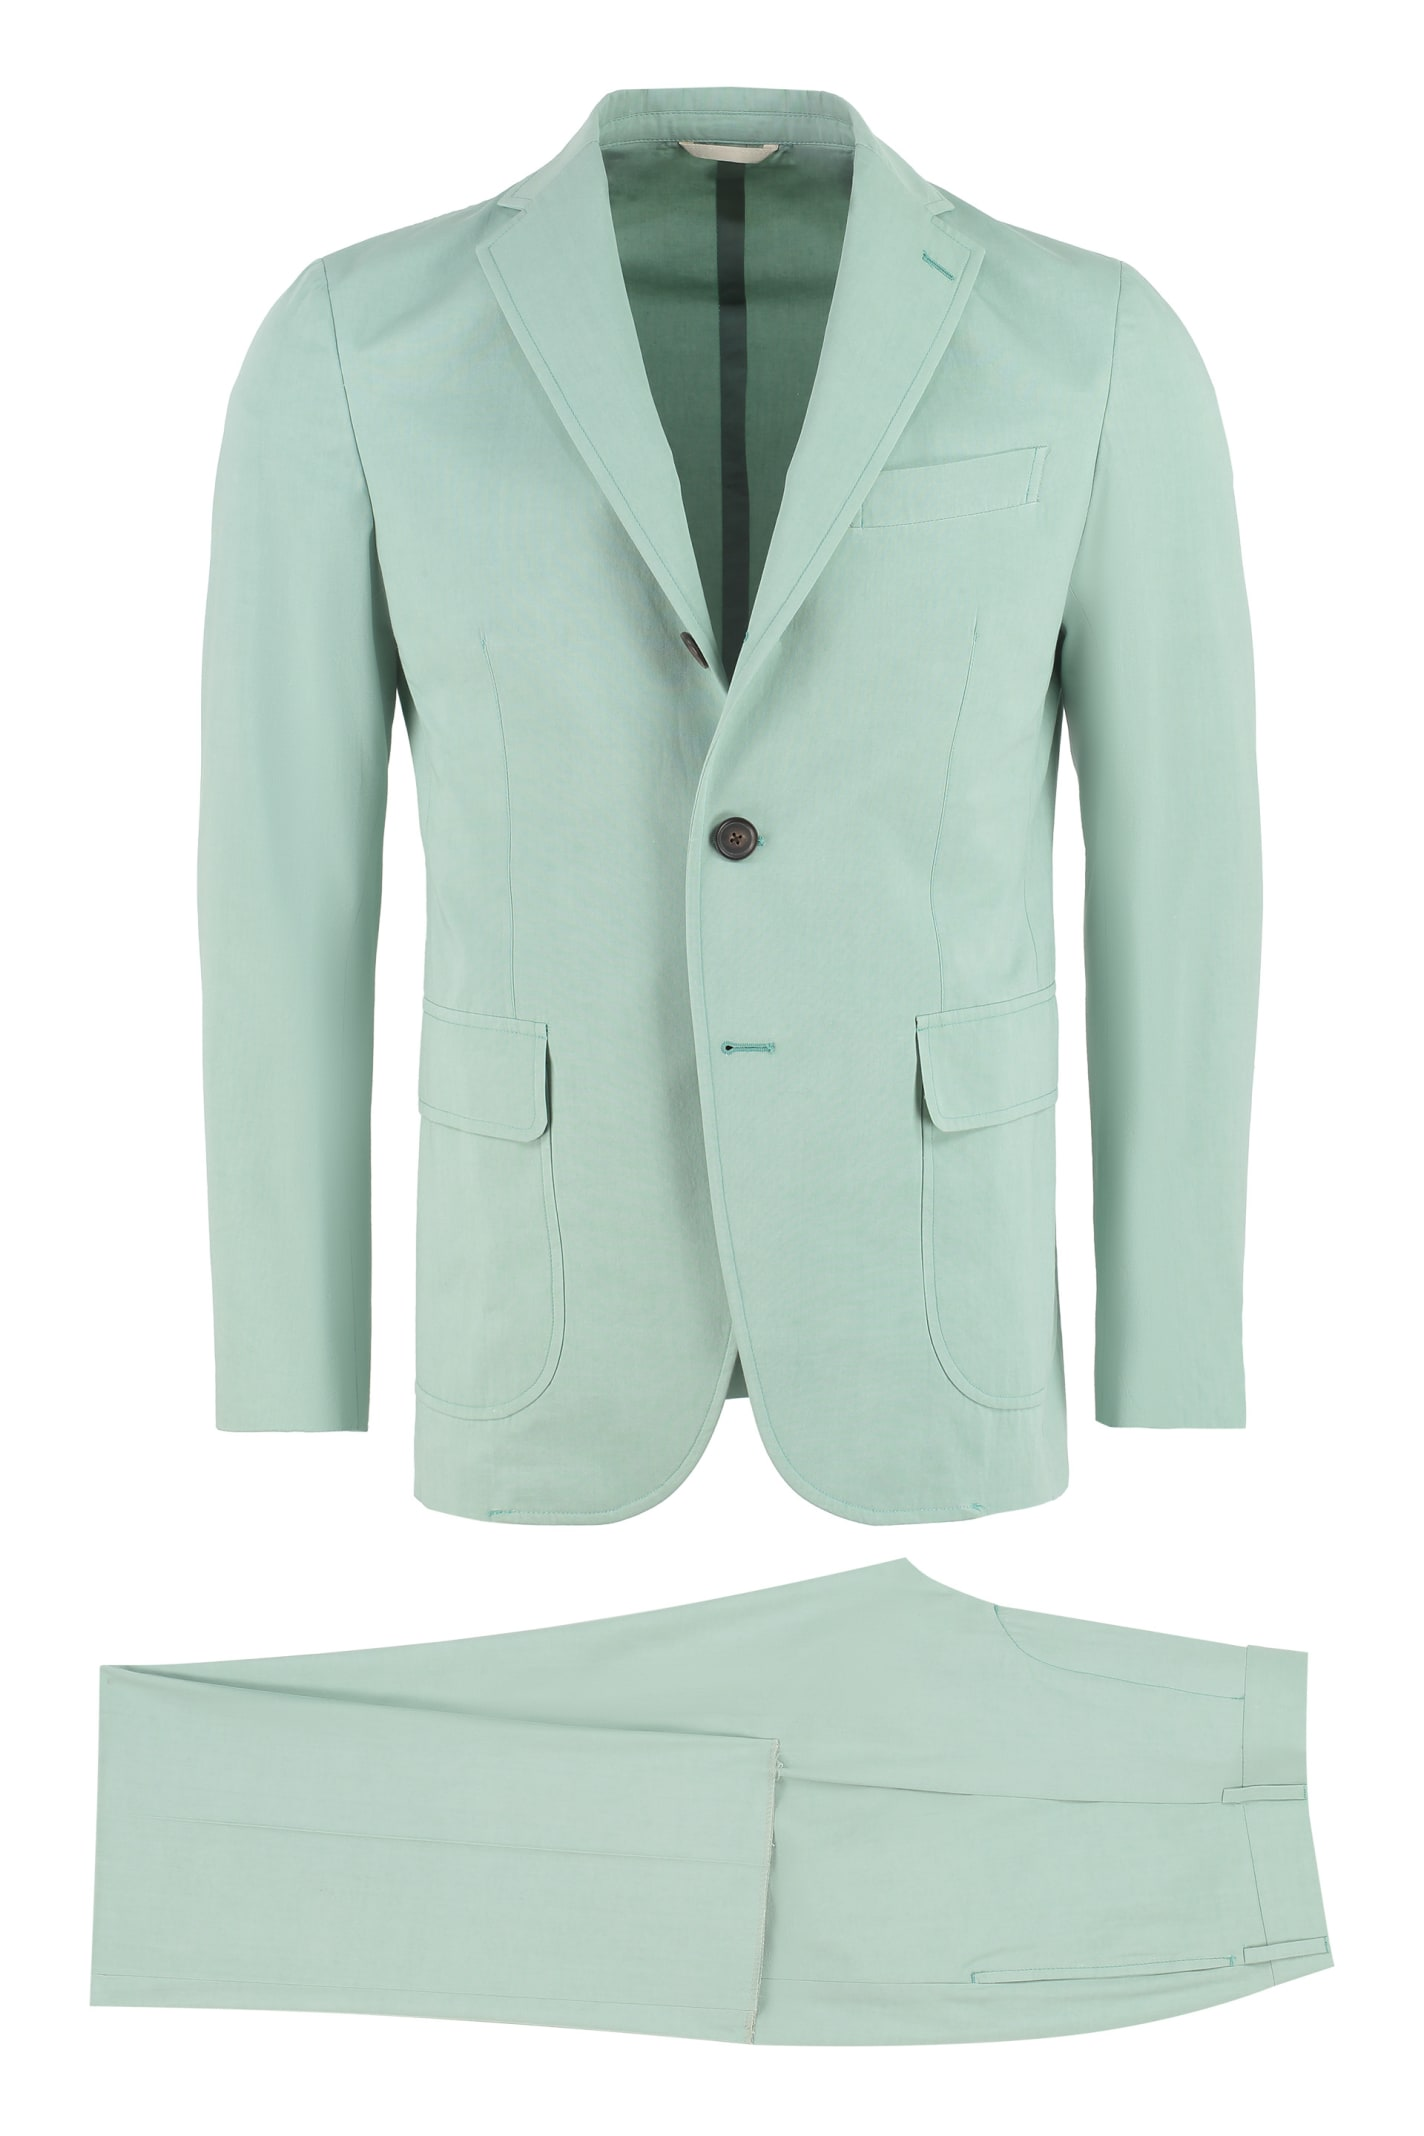 Aabibo Two-piece Suit